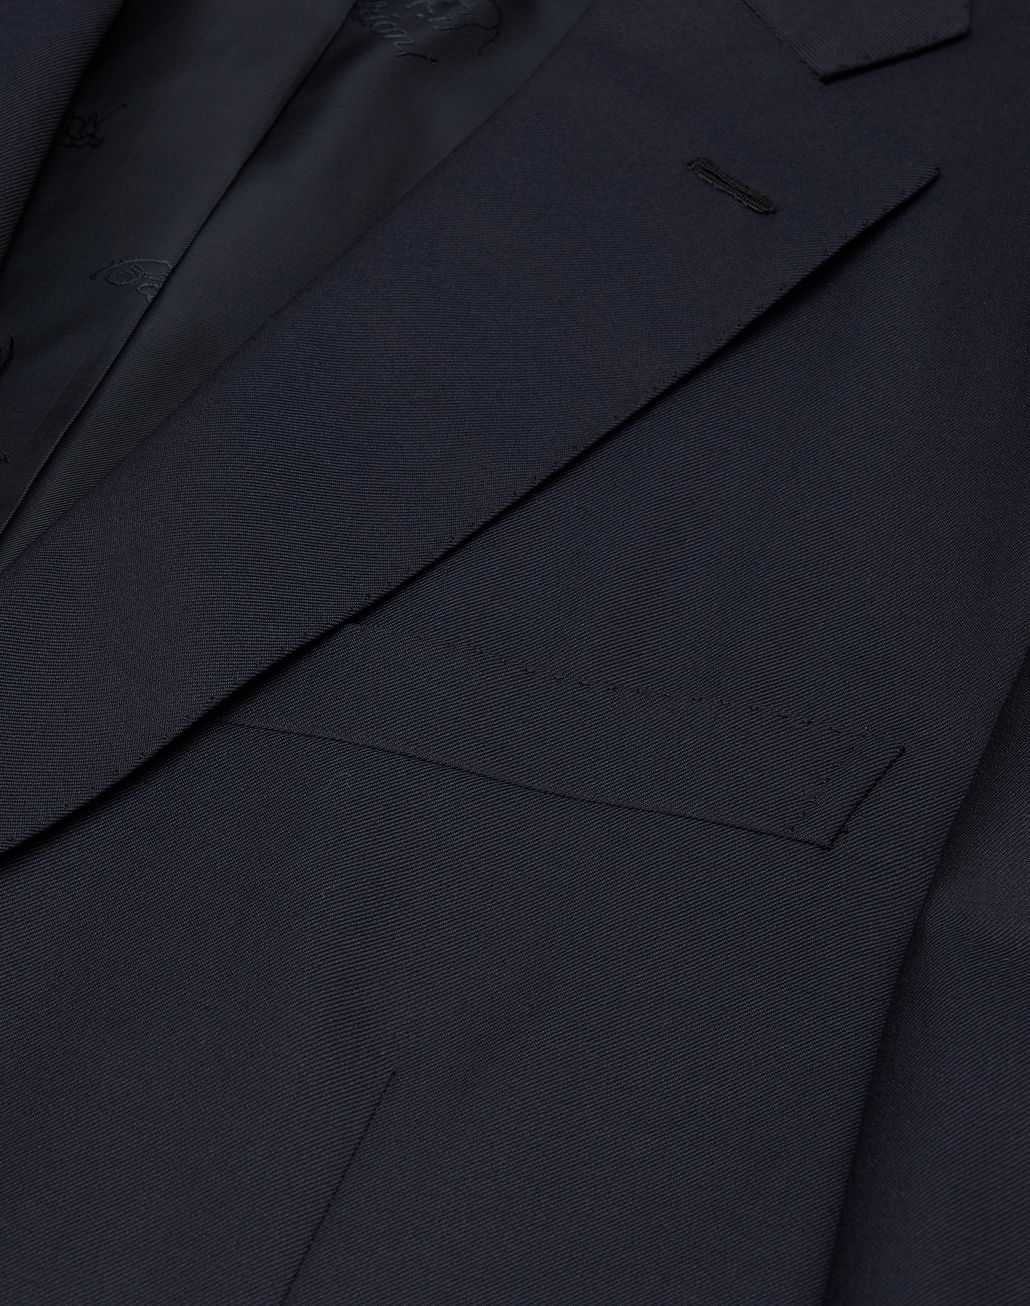 BRIONI Navy Blue Brunico Suit Suits & Jackets Man a